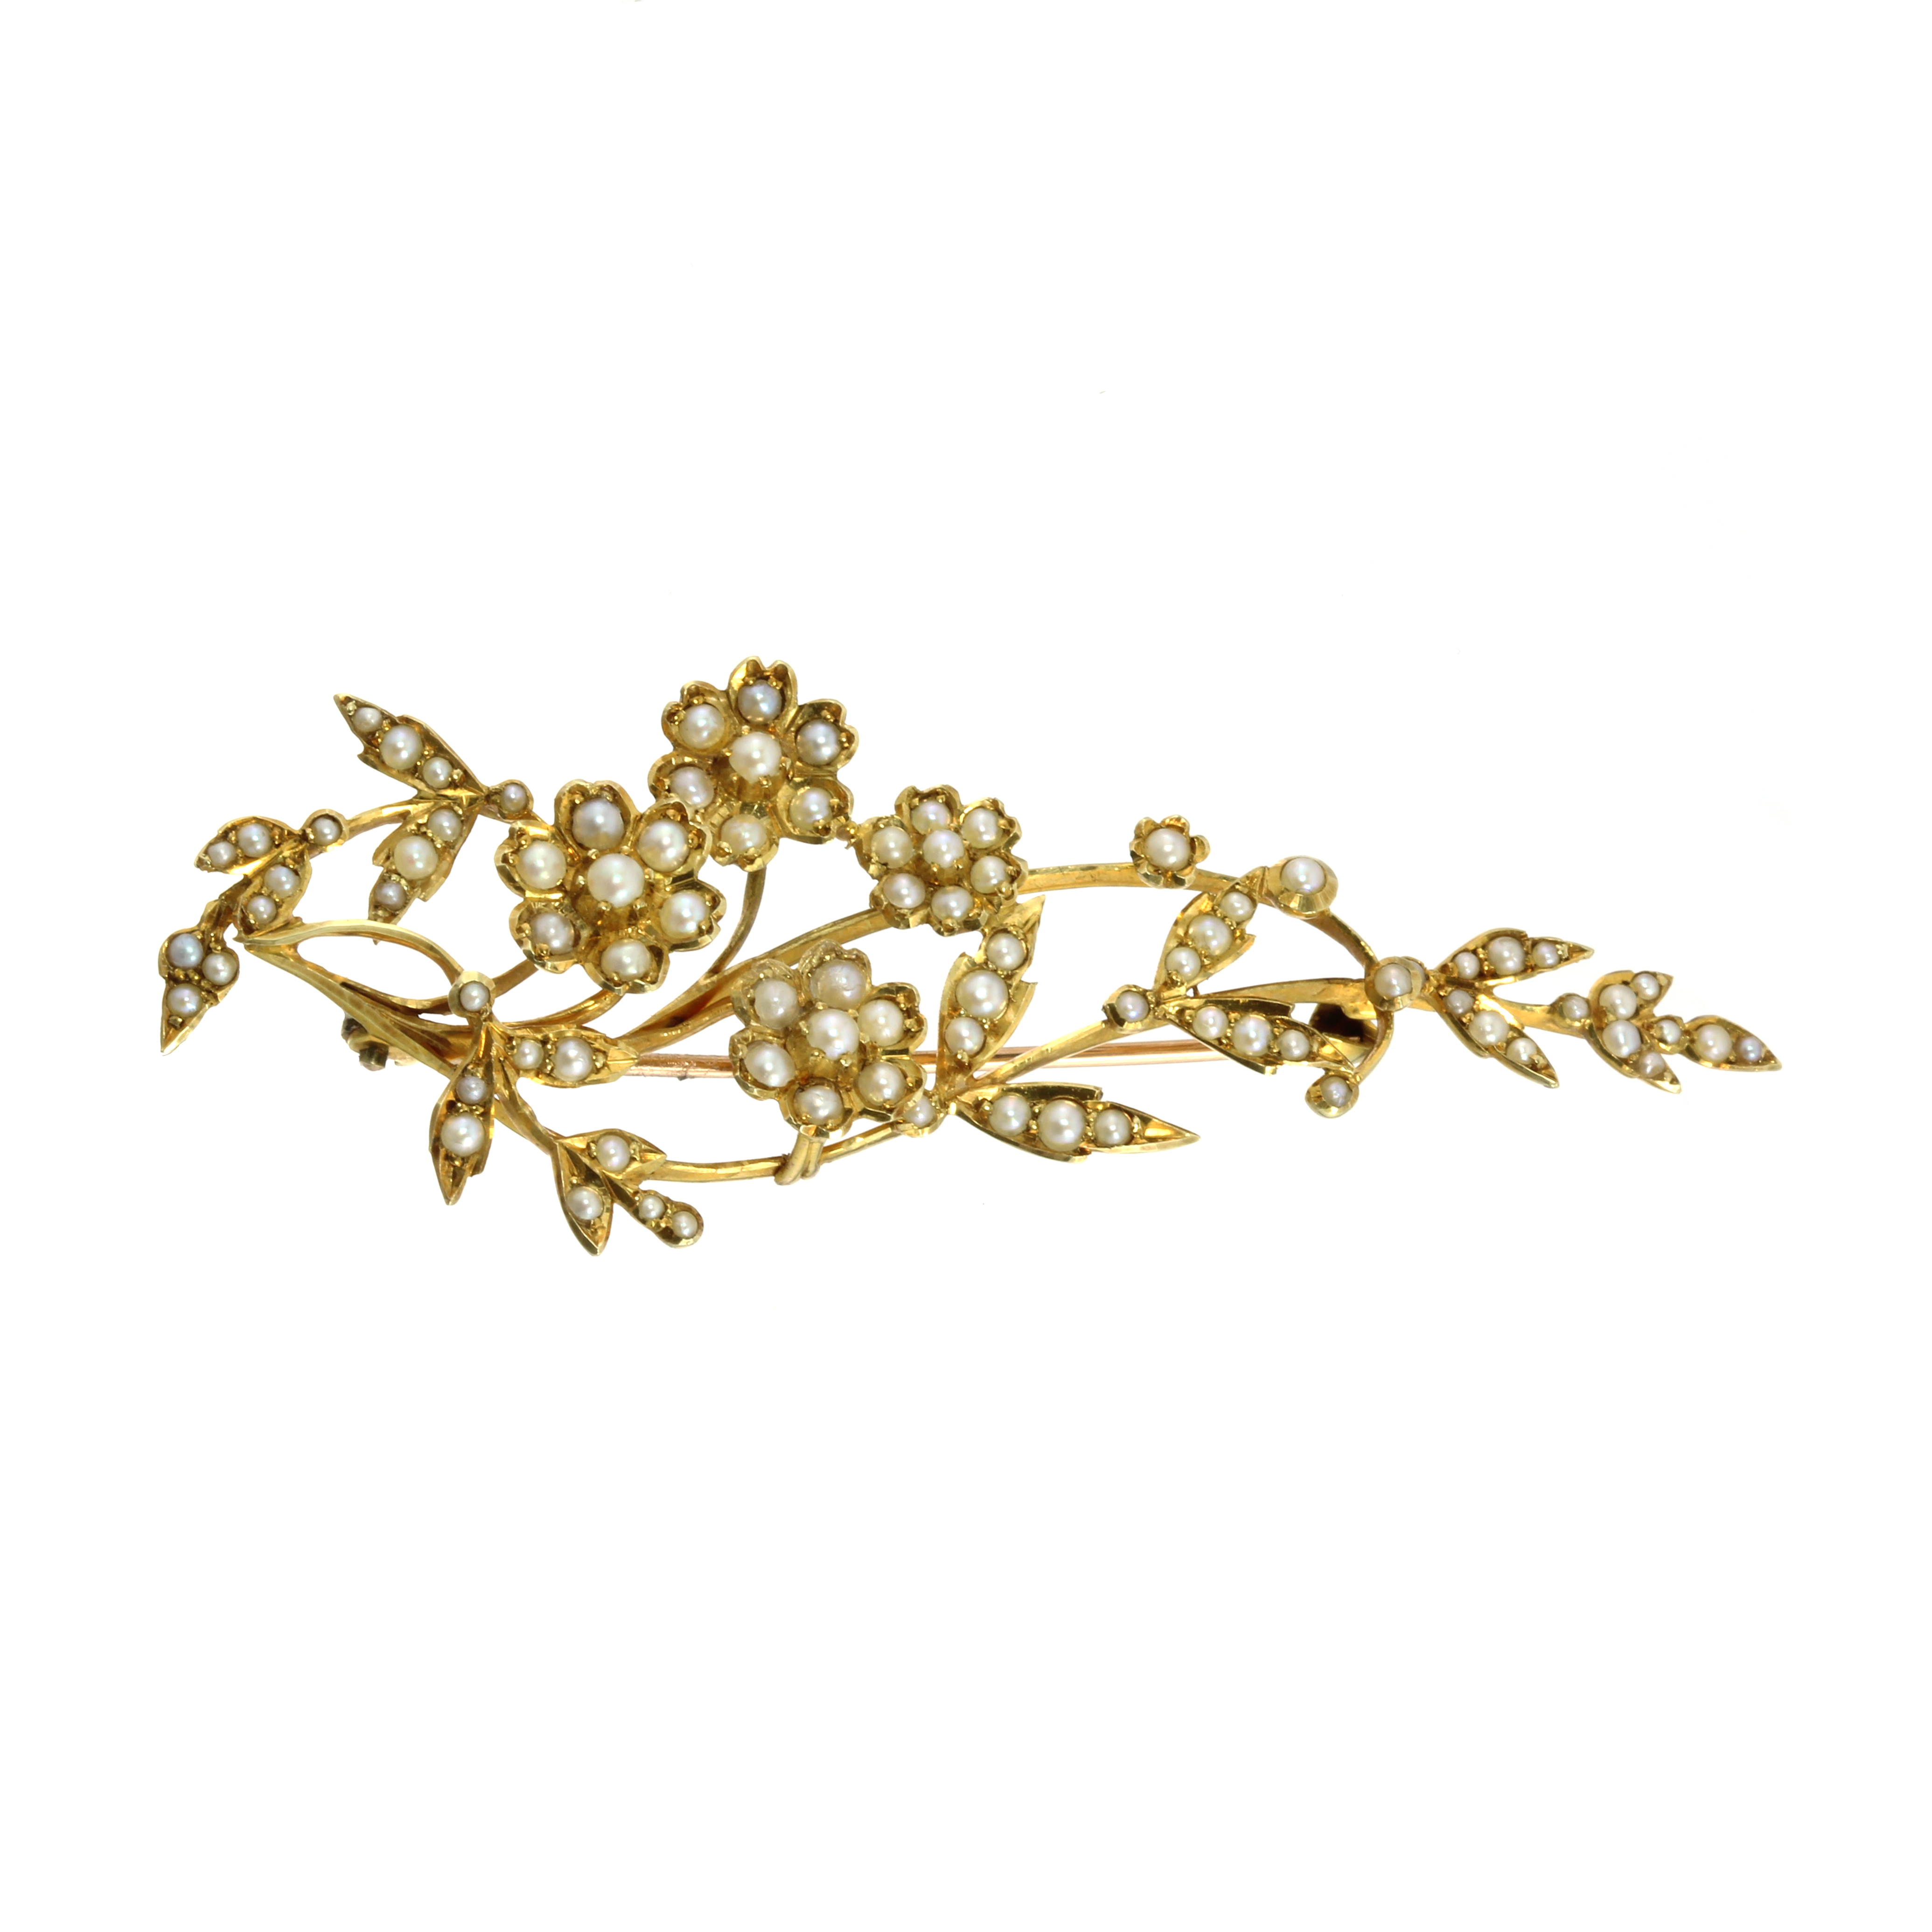 Los 24 - AN ANTIQUE PEARL BROOCH, LATE 19TH CENTURY designed as a floral spray with leaves and flowers,